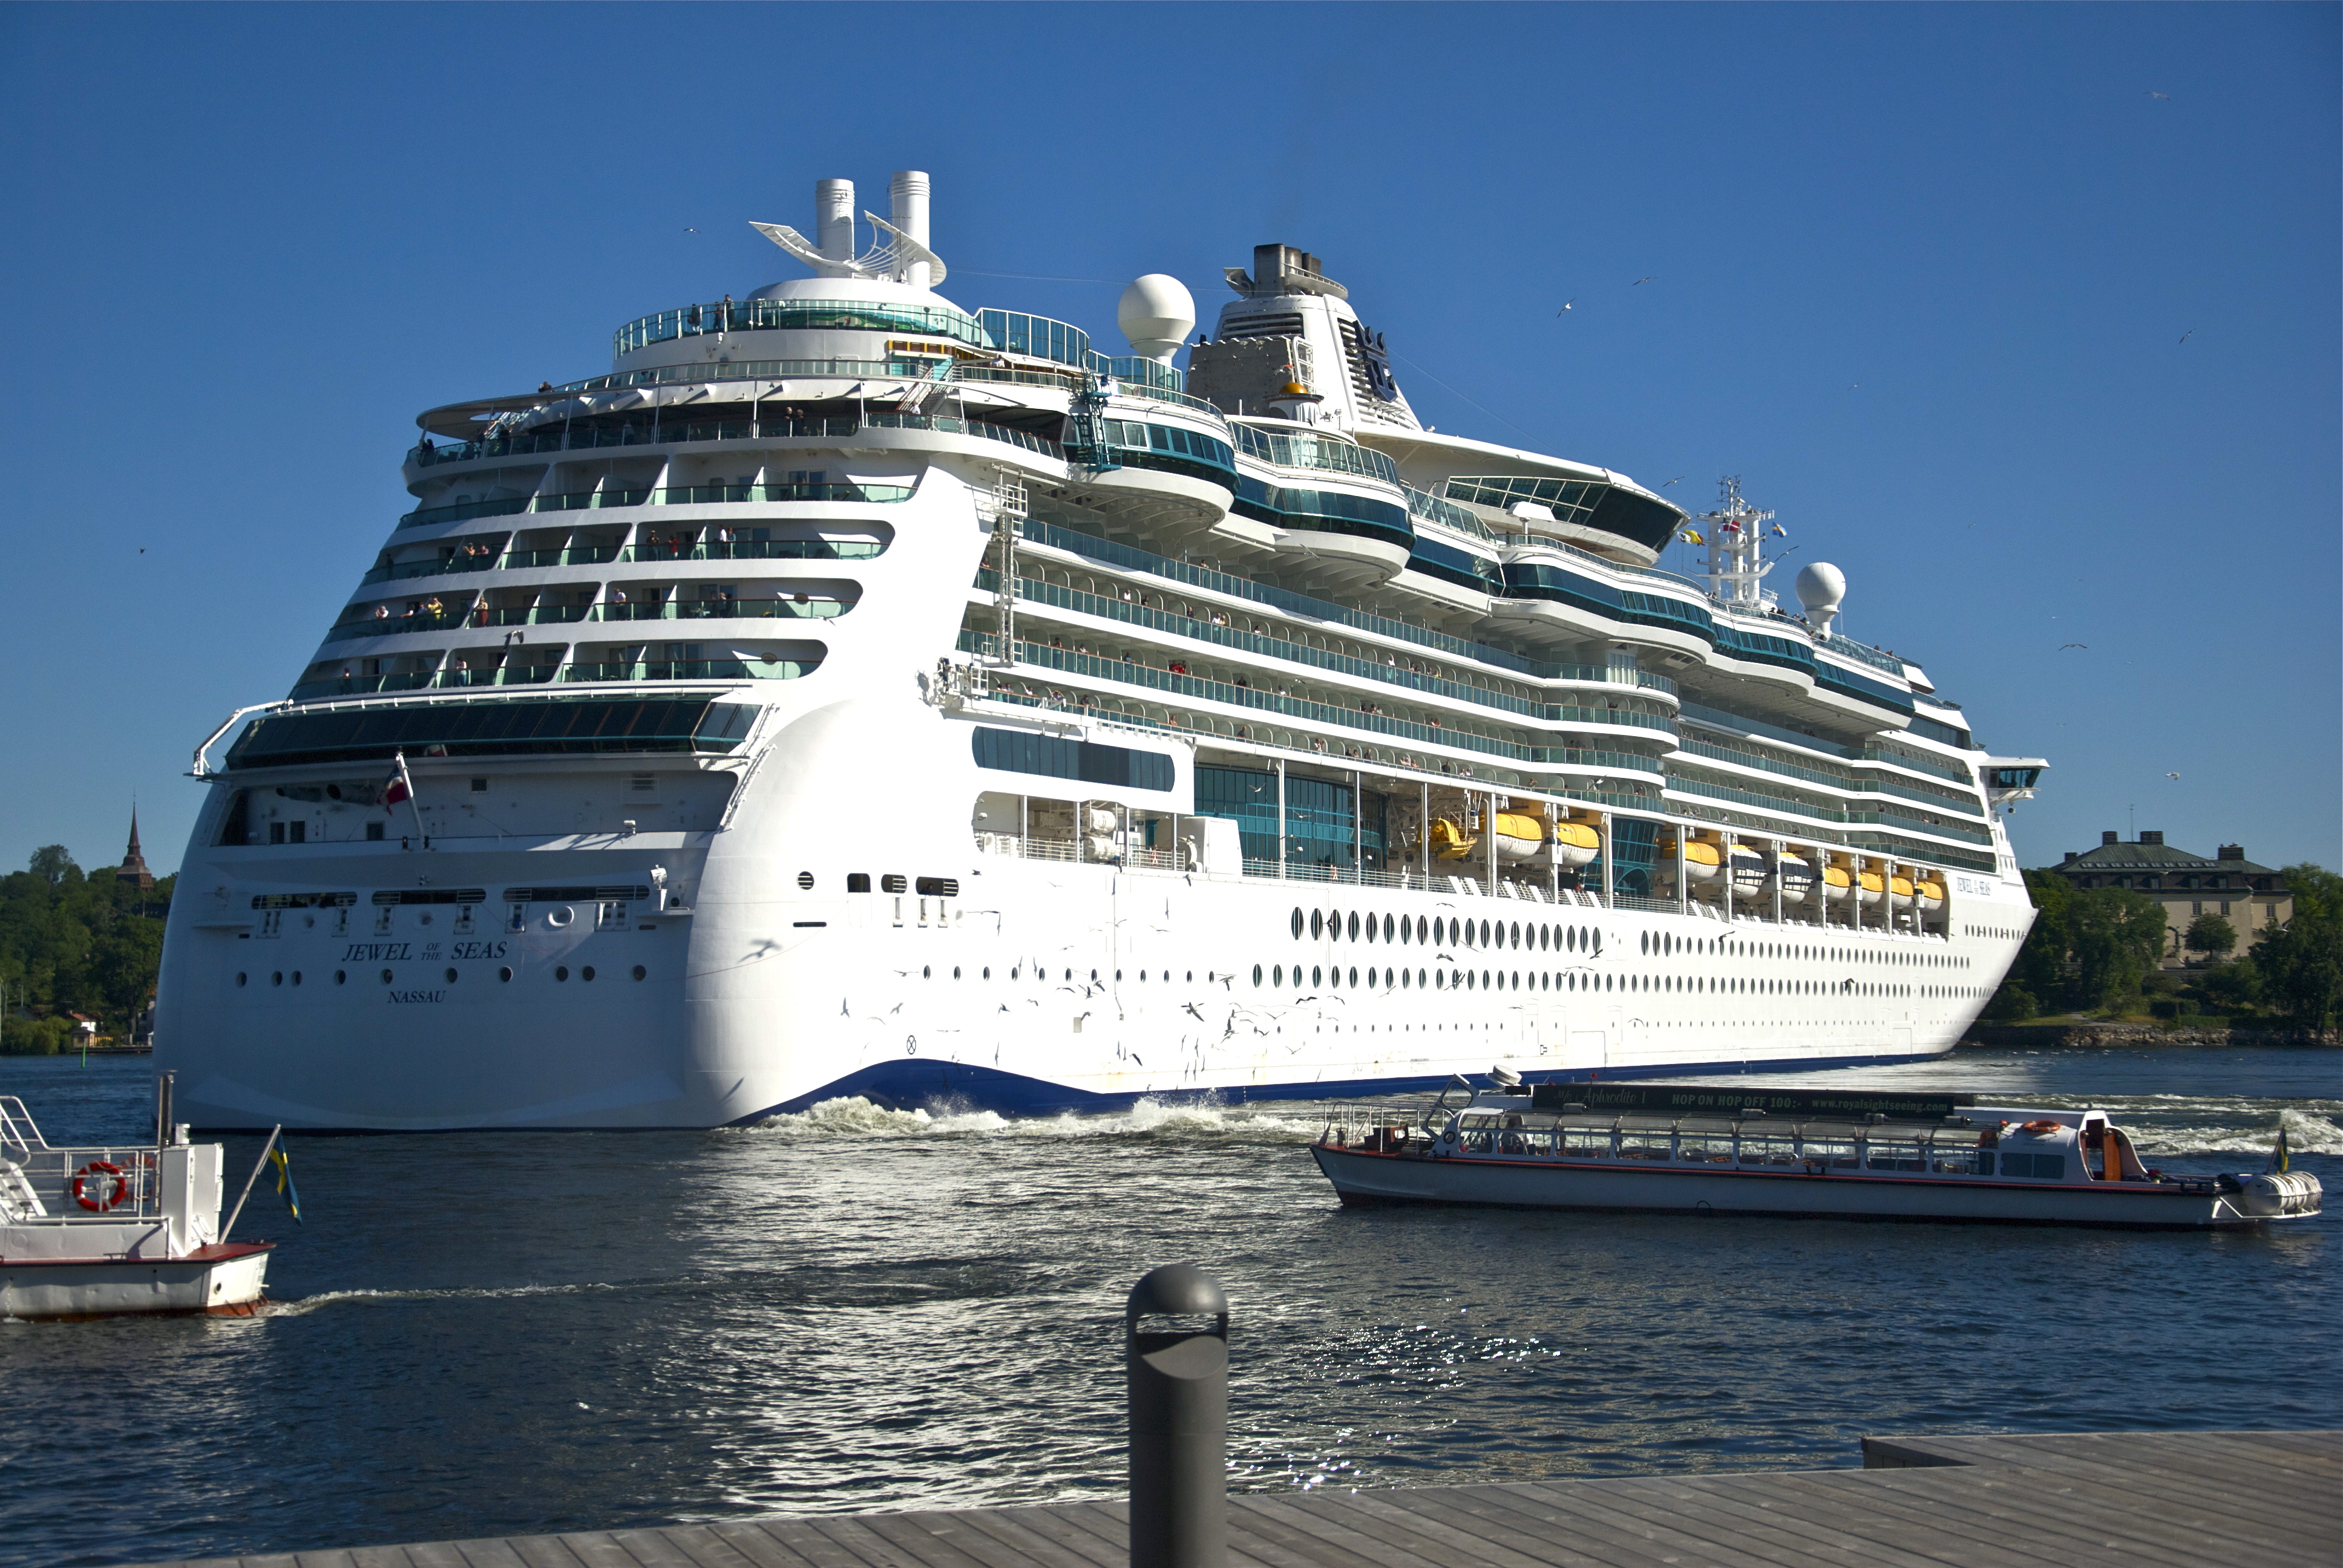 jewel of the seas photos